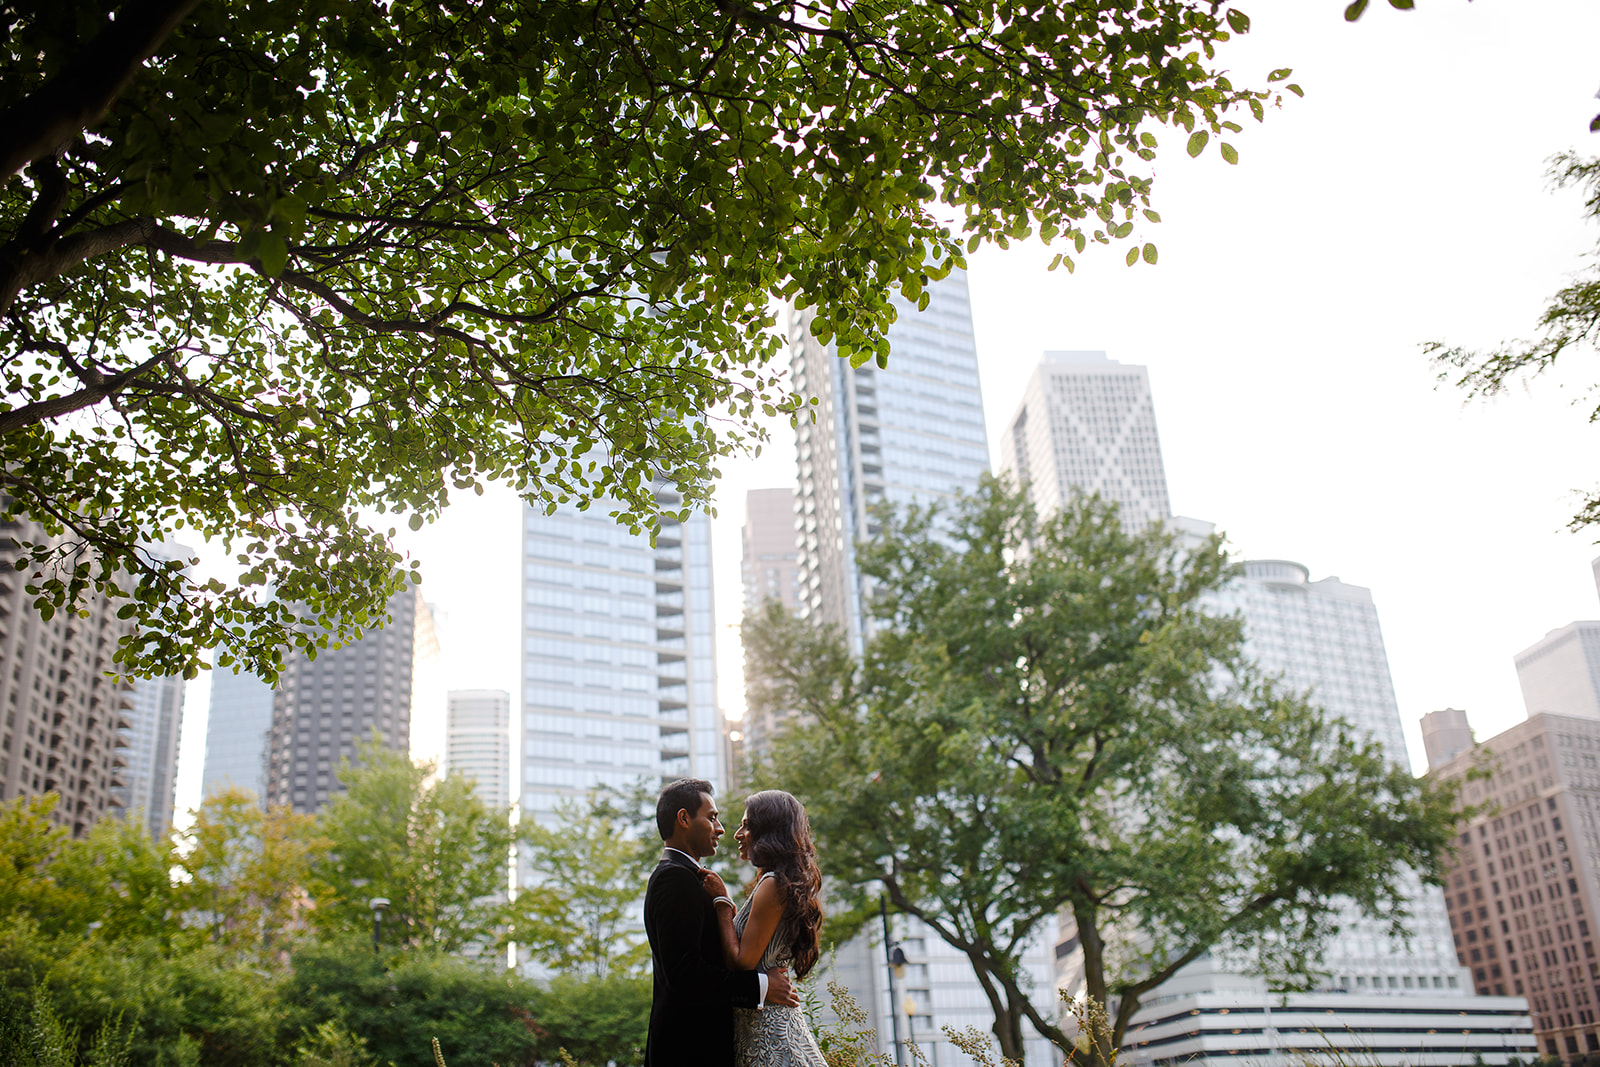 A quick trip outside provided for some portraits in front of the skyline of the city.